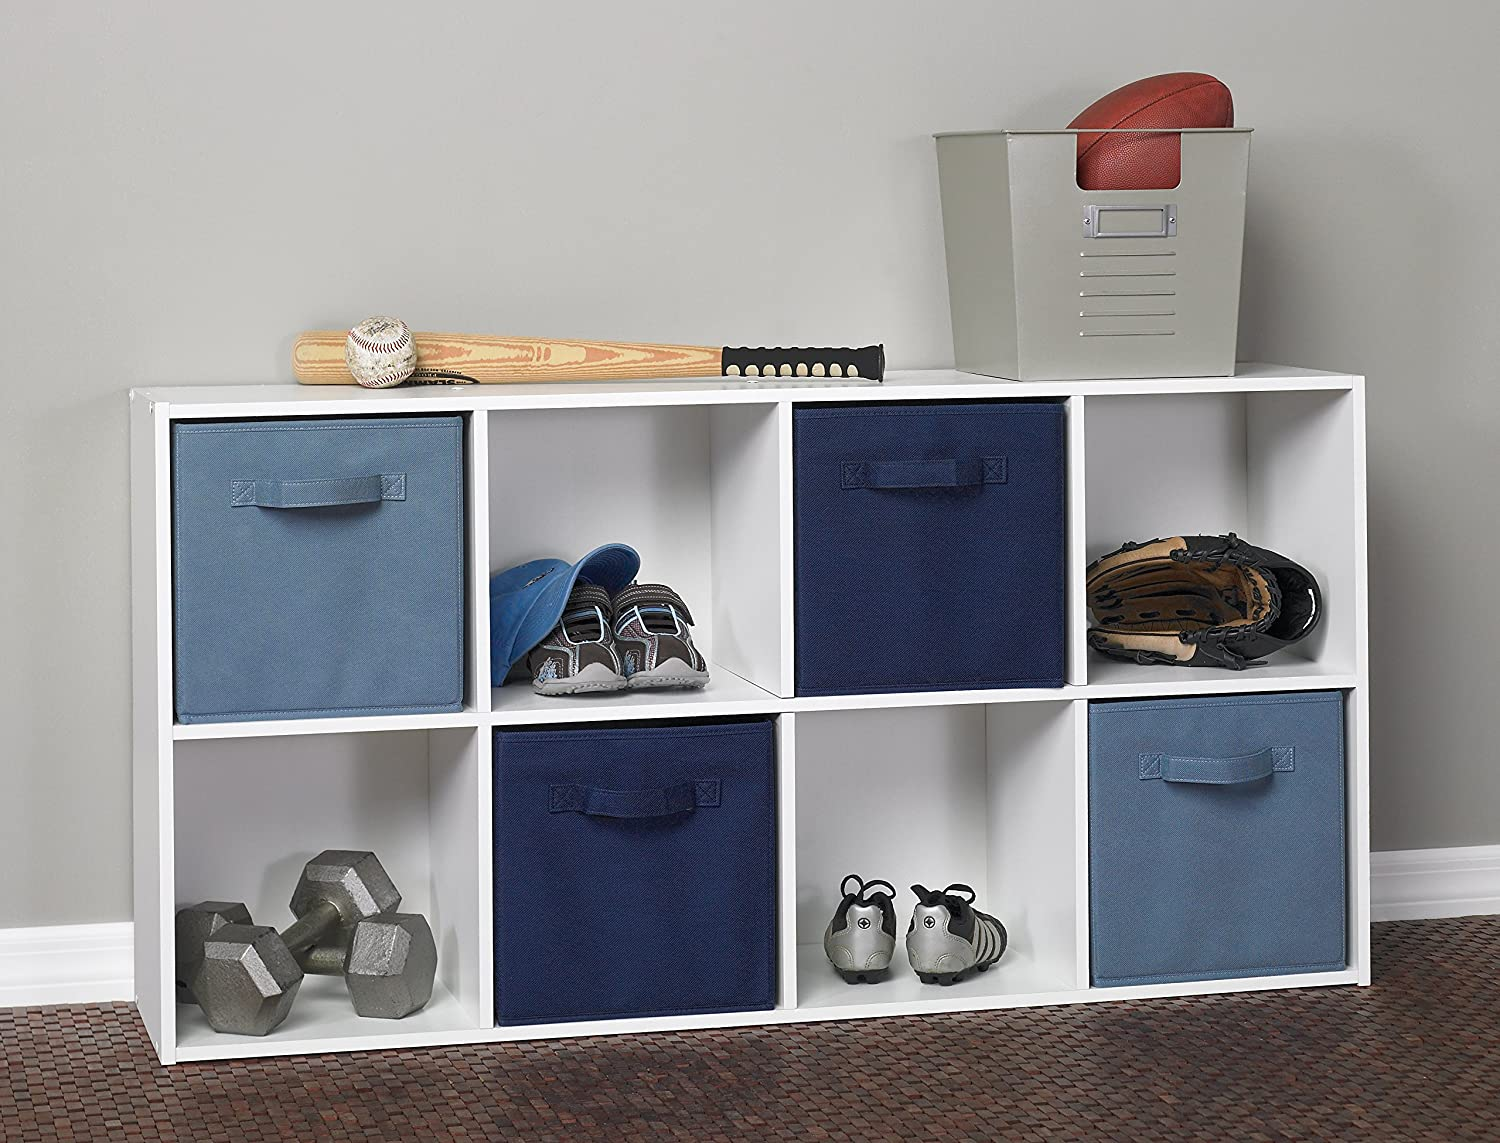 ClosetMaid Cubeicals Organizer